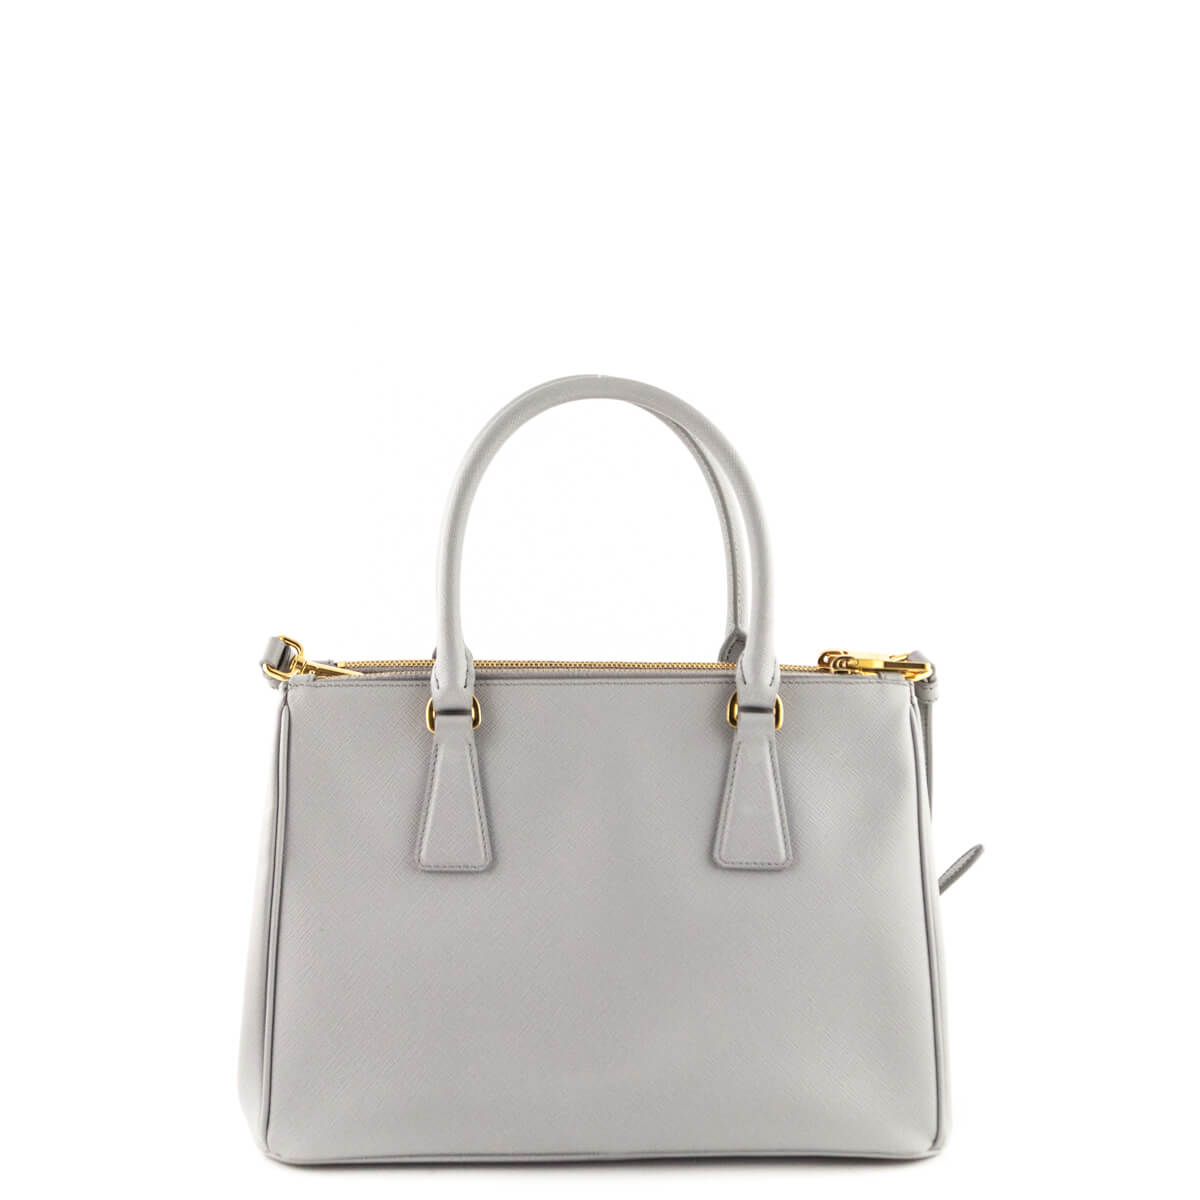 45dae1803905d0 ... france prada astral gray saffiano small galleria double zip lux tote  love that bag preowned c8a1b